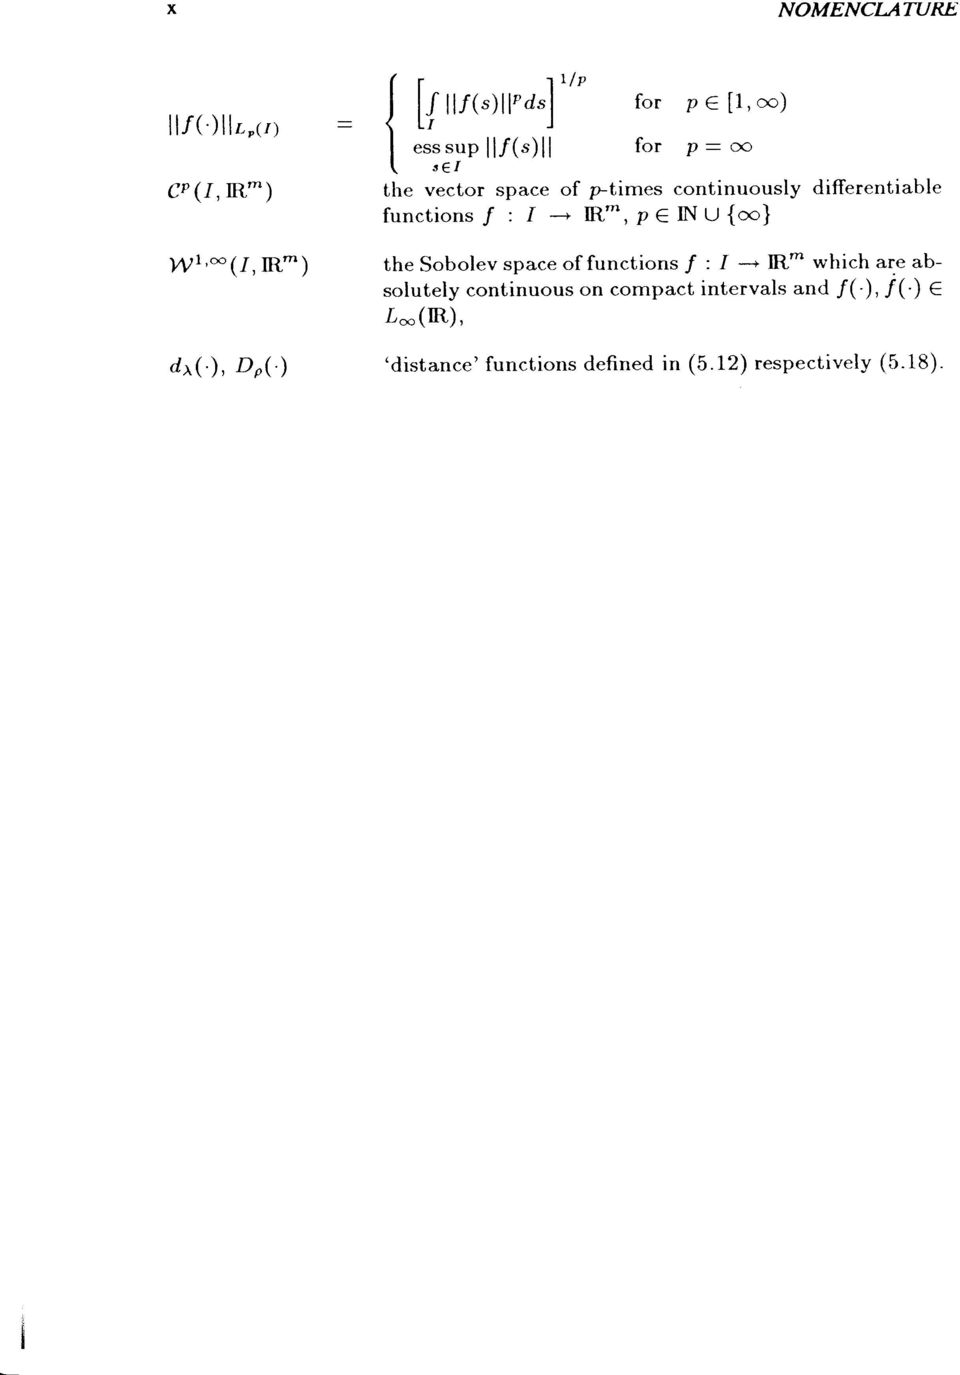 space of ptimes continuously differentiable functions/ : --* R*,p NU{oo} the Sobolev space of